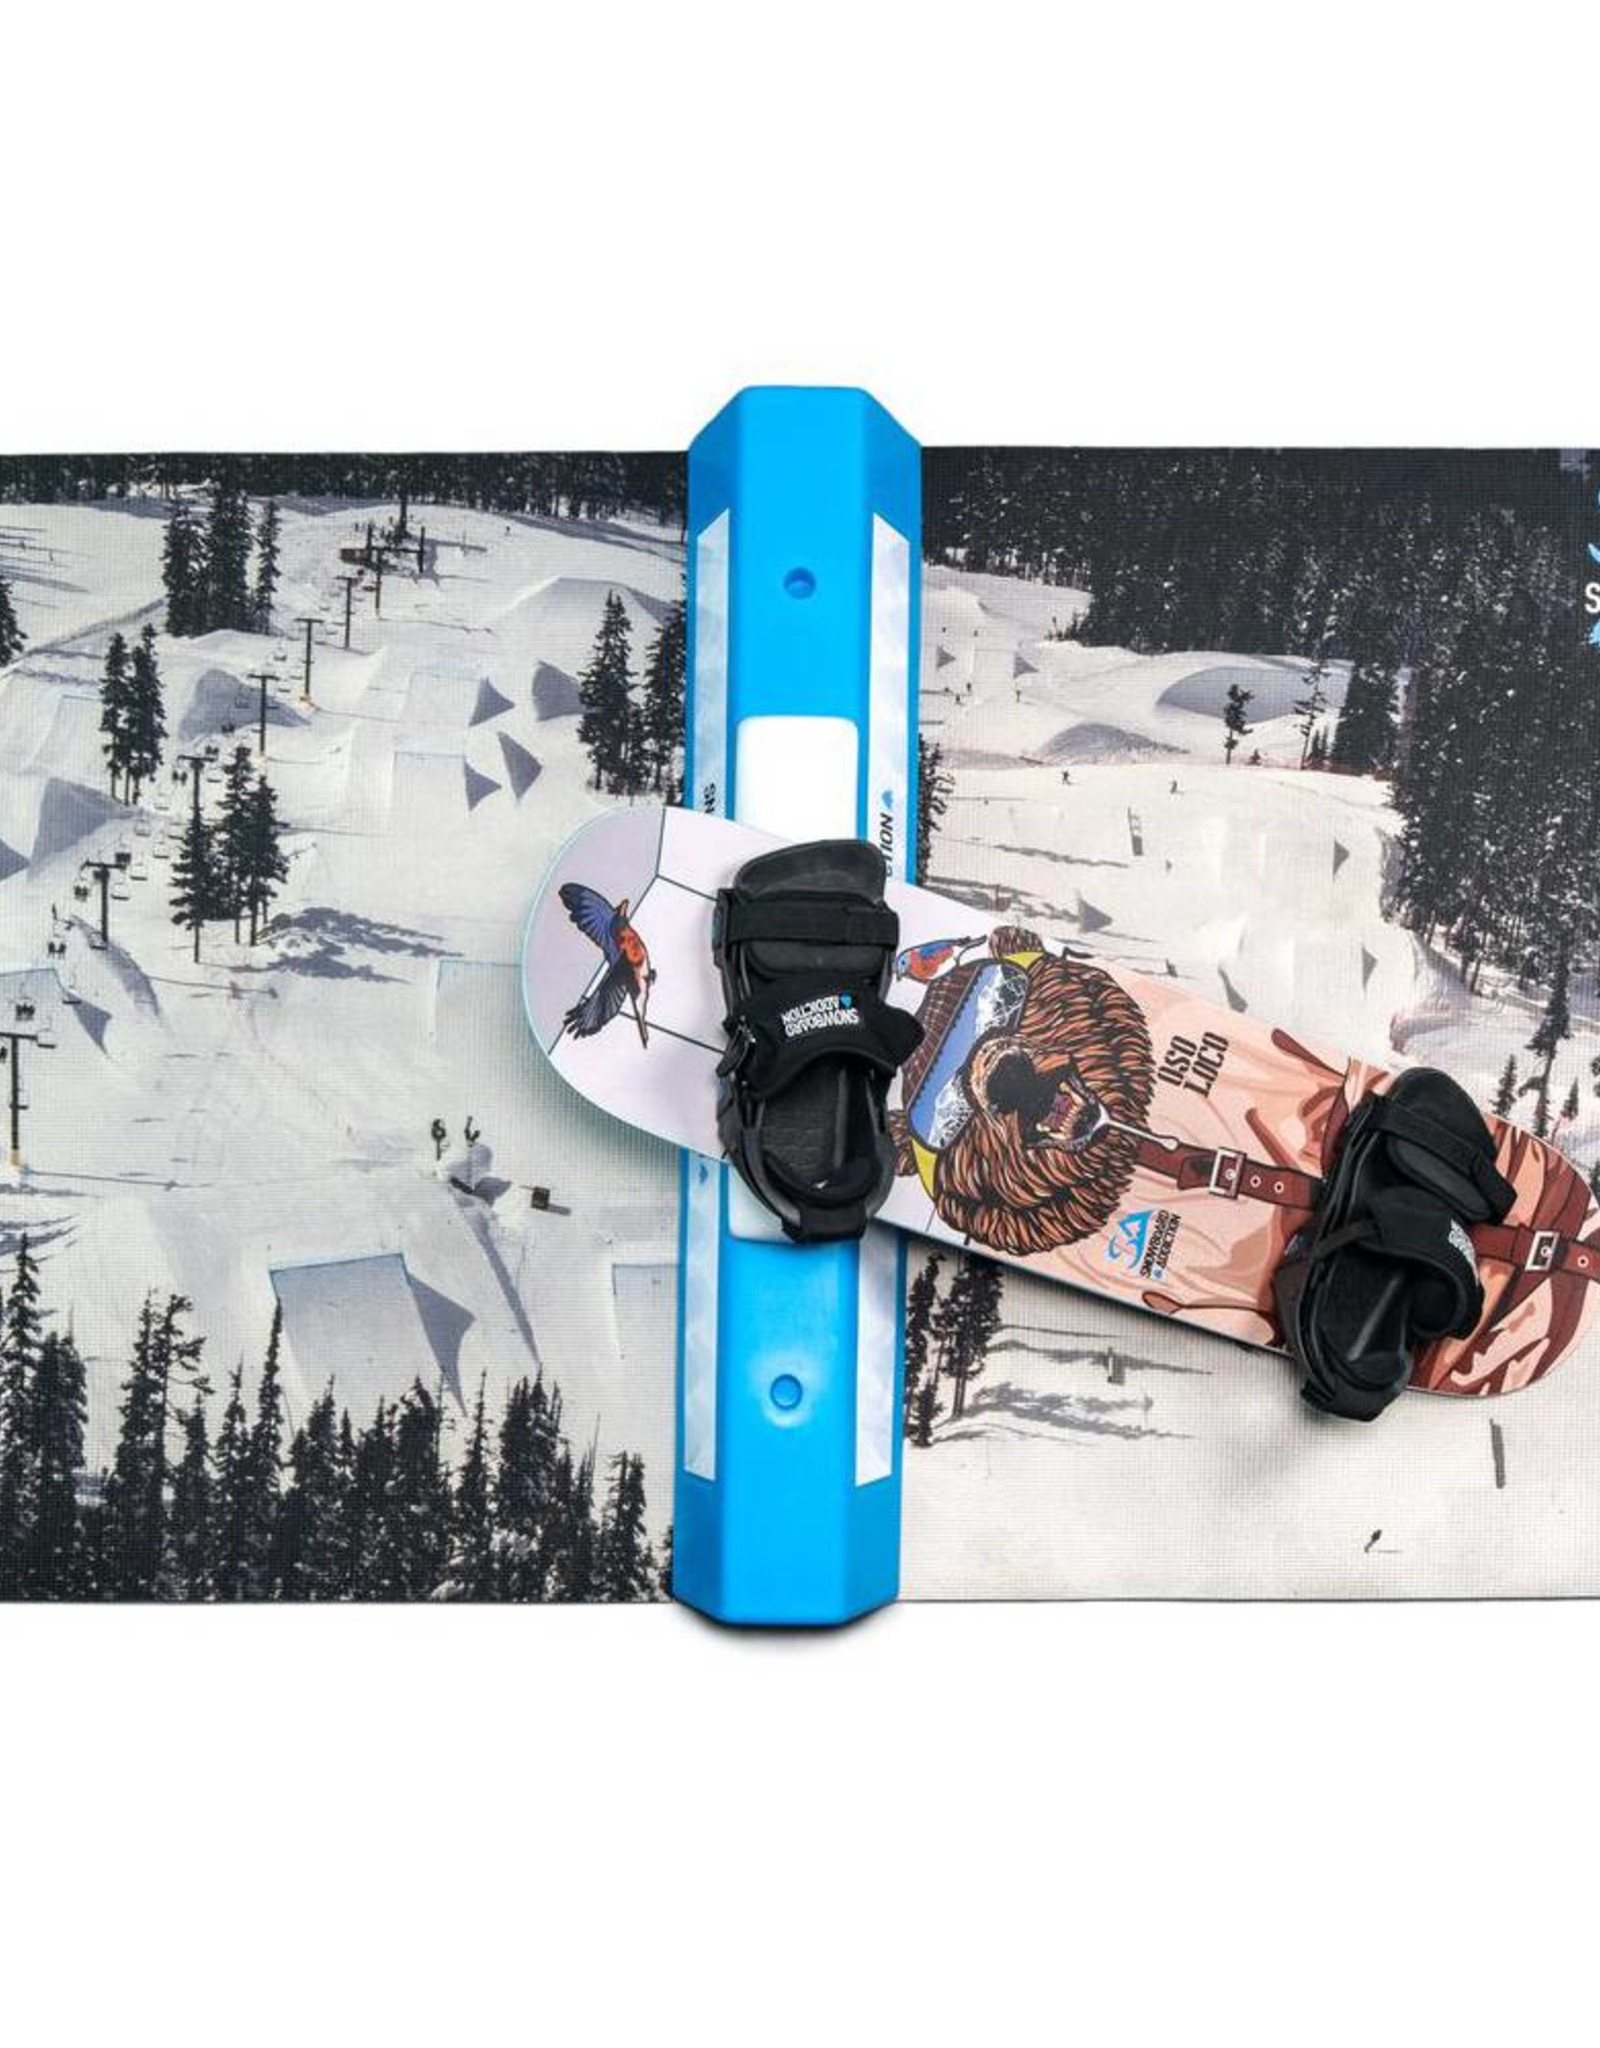 Snowboard Addiction Snowboard Addiction Training Mat Teppich für das Trockentraining